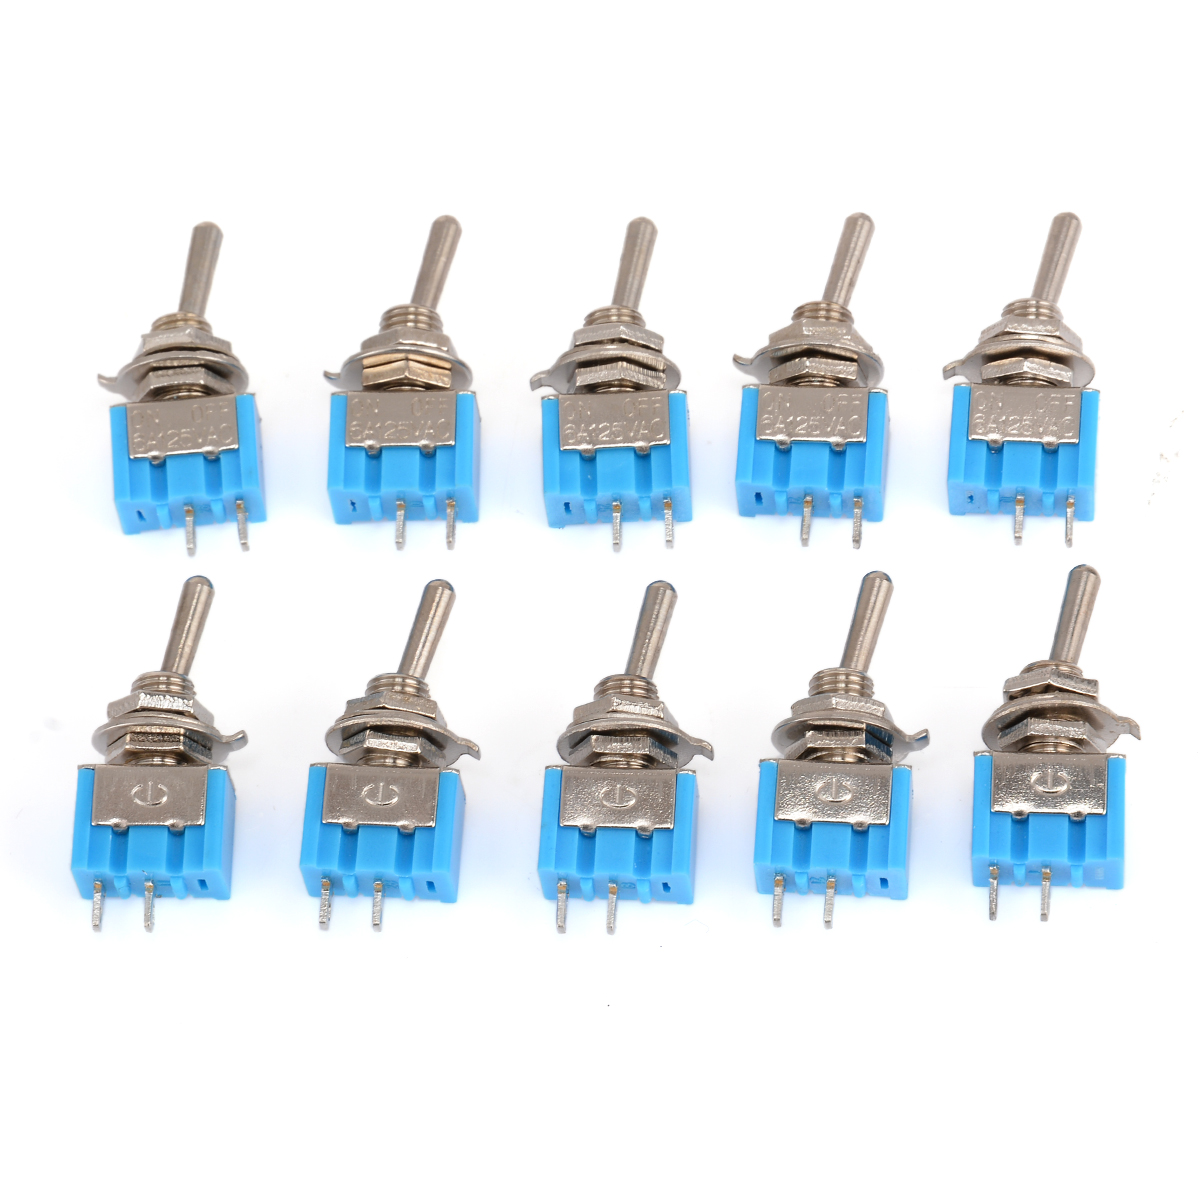 10pcs MTS-101 2 Pin SPST Switch ON-OFF 2 Position 6A 250V AC Mini Toggle Switches 33*13*8mm Mayitr Electrical Supplies 10pcs dark blue 3 position spst latching switches mini on off on toggle switch 6a 125vac 3a 250vac for switching lights motors